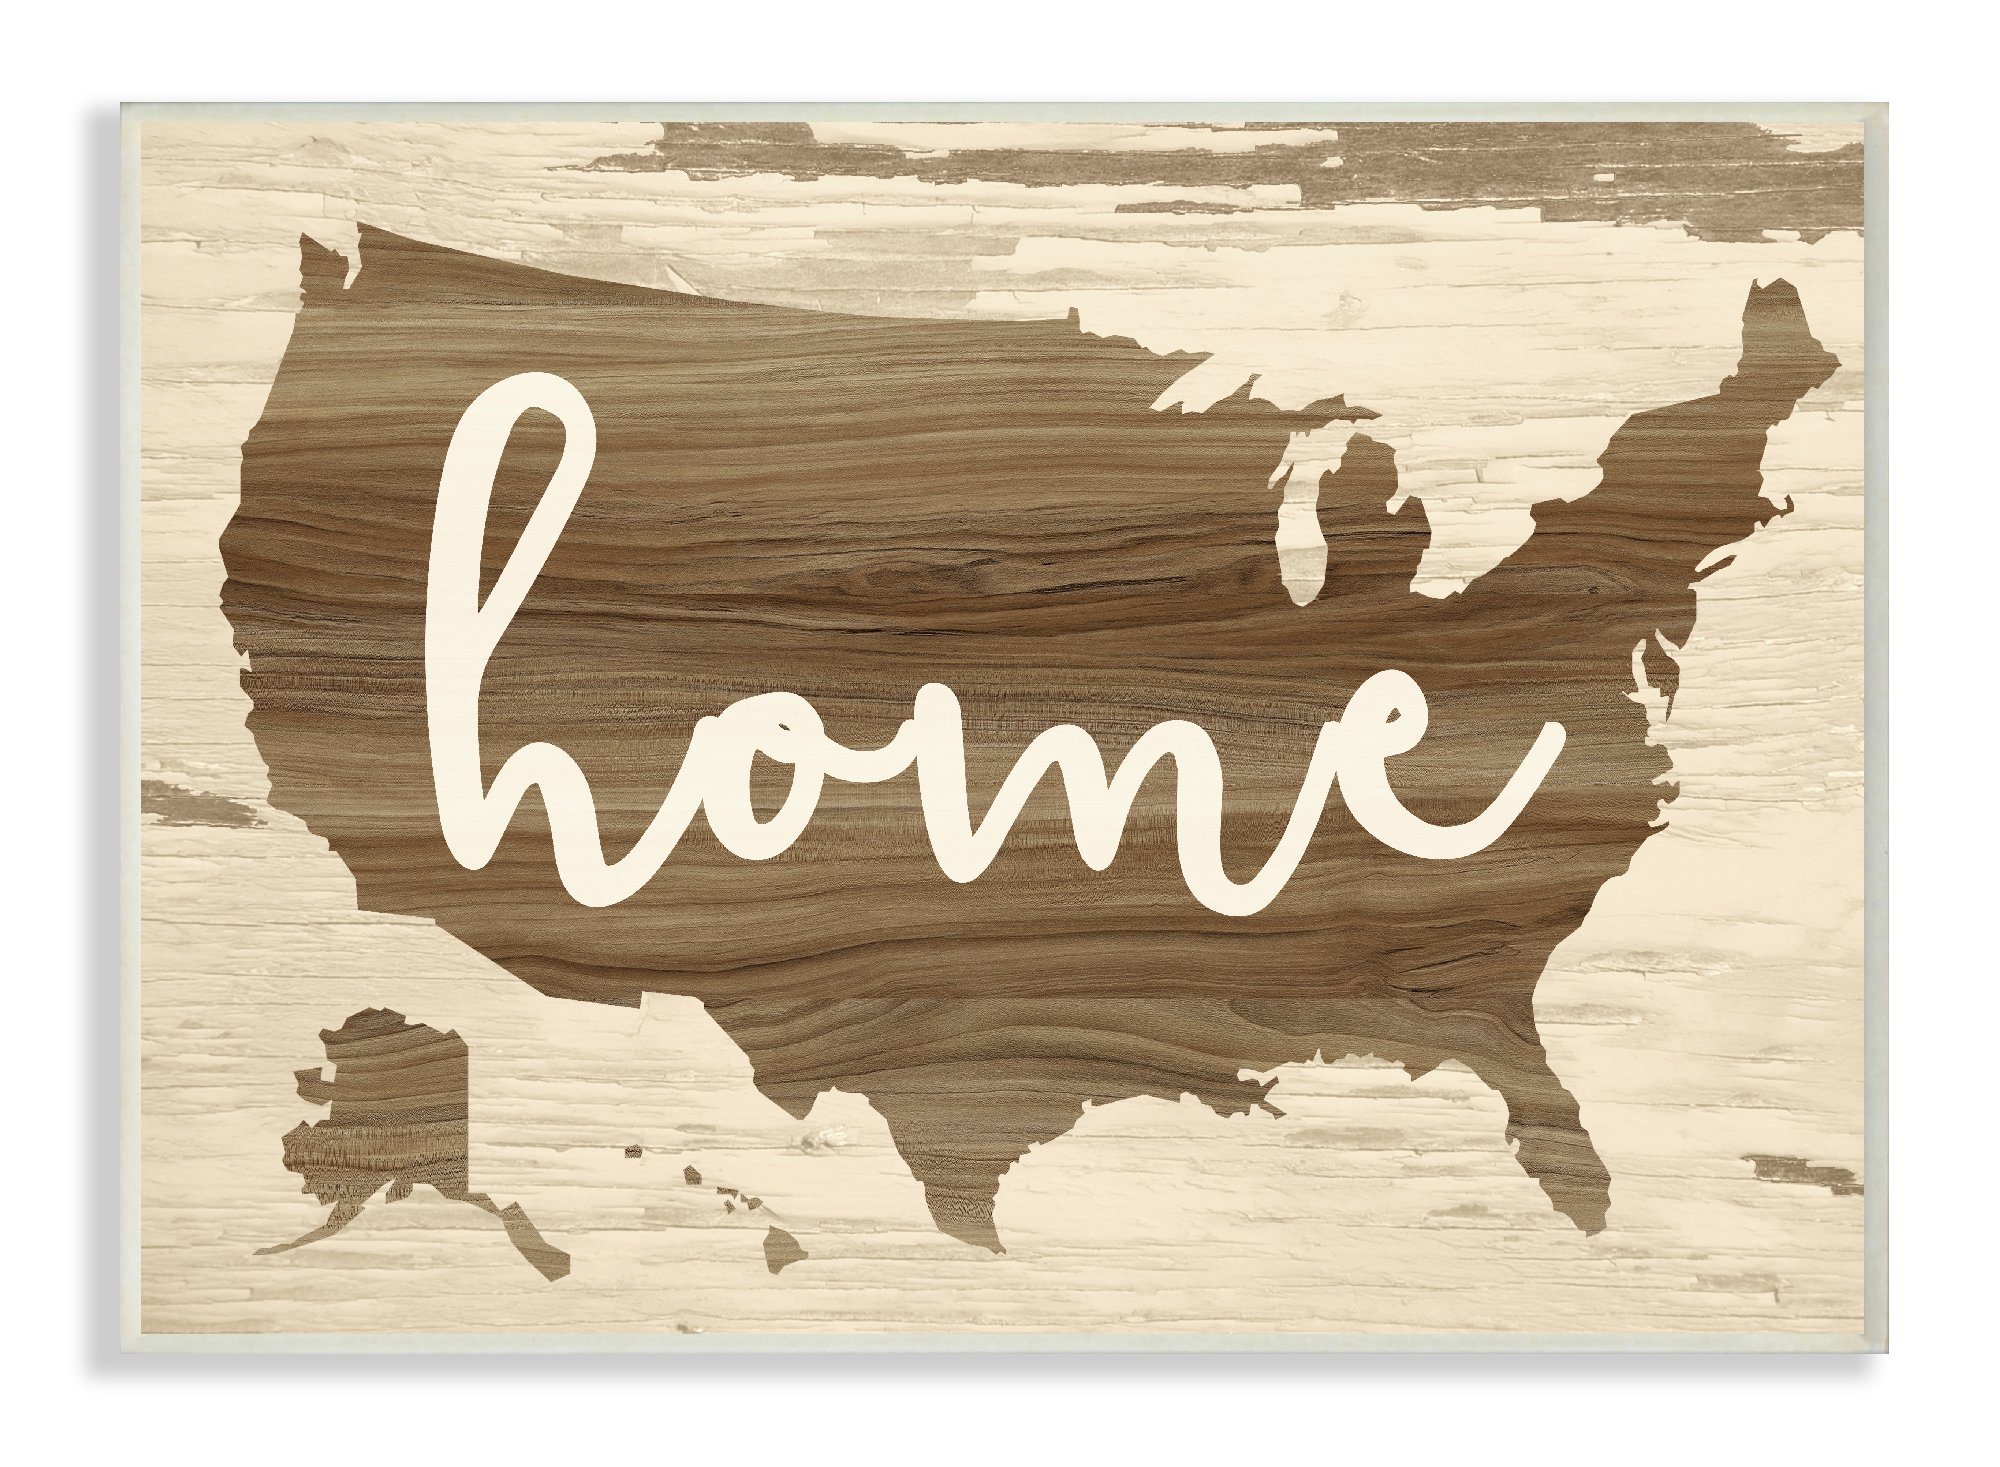 Stupell Home Décor Home Distressed Wood US Map Wall Plaque Art, 10 x 0.5 x 15, Proudly Made in USA